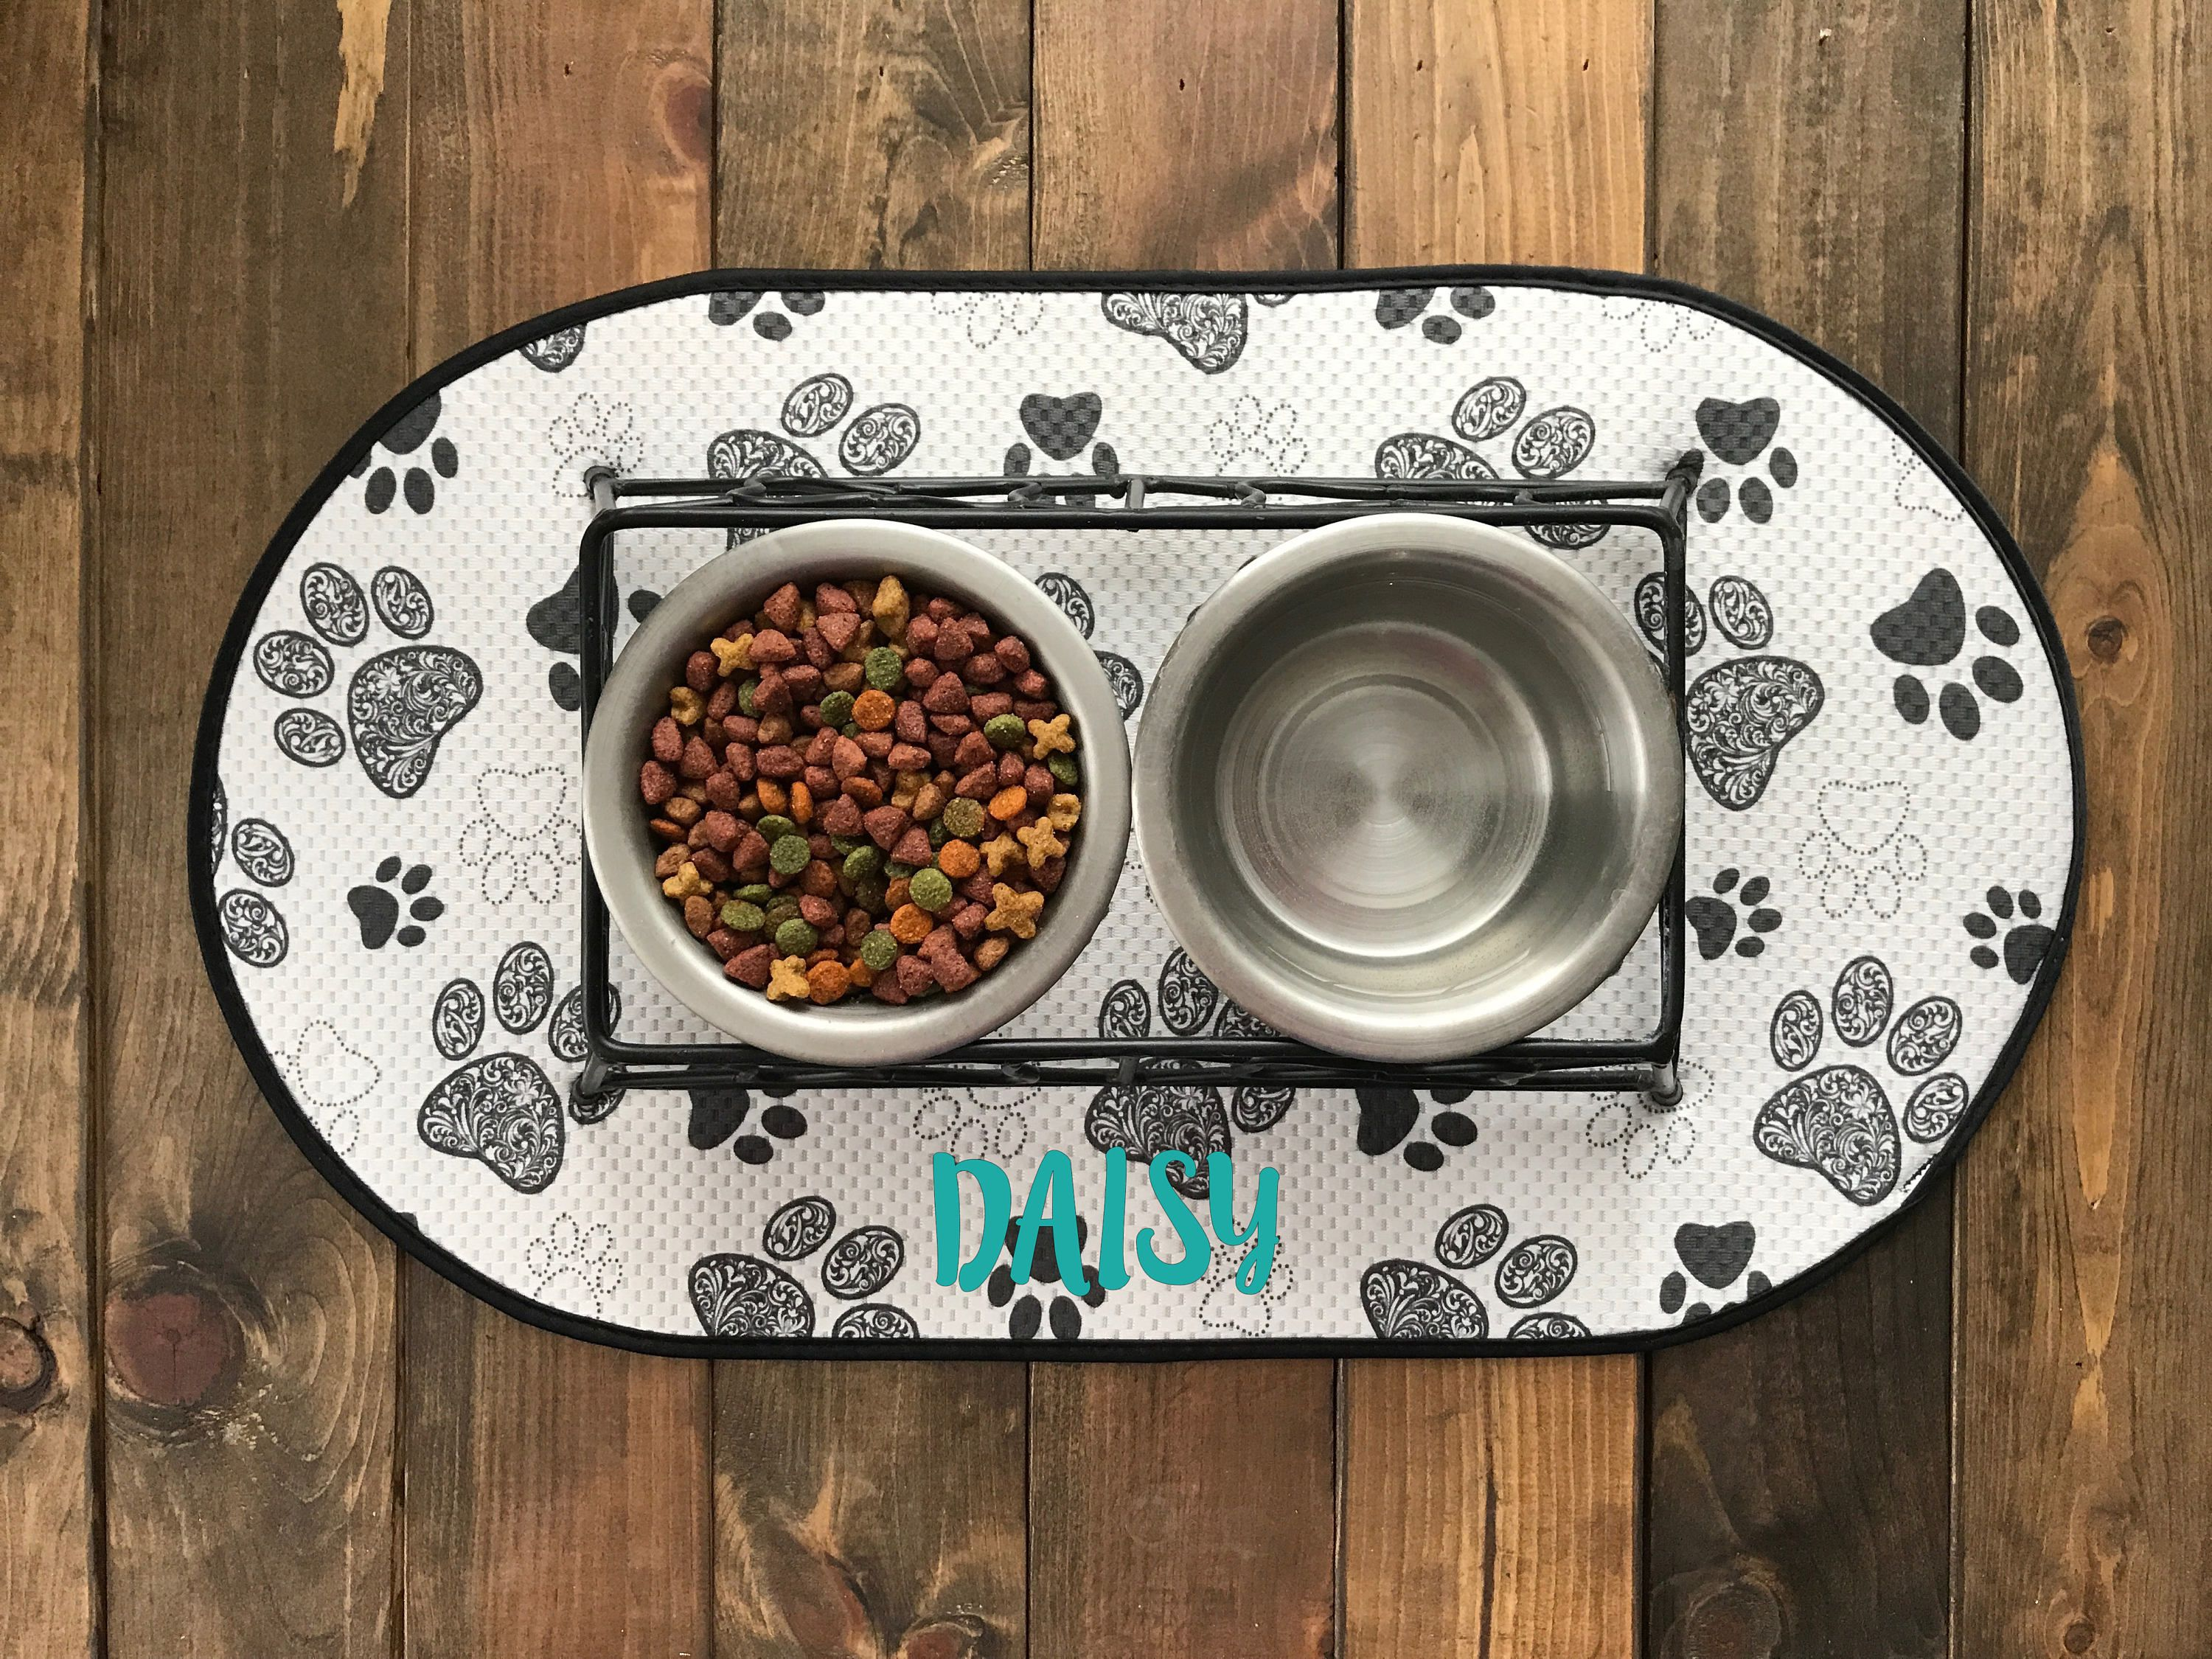 tray mat dw dog shape antique carpet cups clean imposing puppy feeding mats to wipe cats water food dogs bowl eva dish placemat cat pet also place showy pvc for